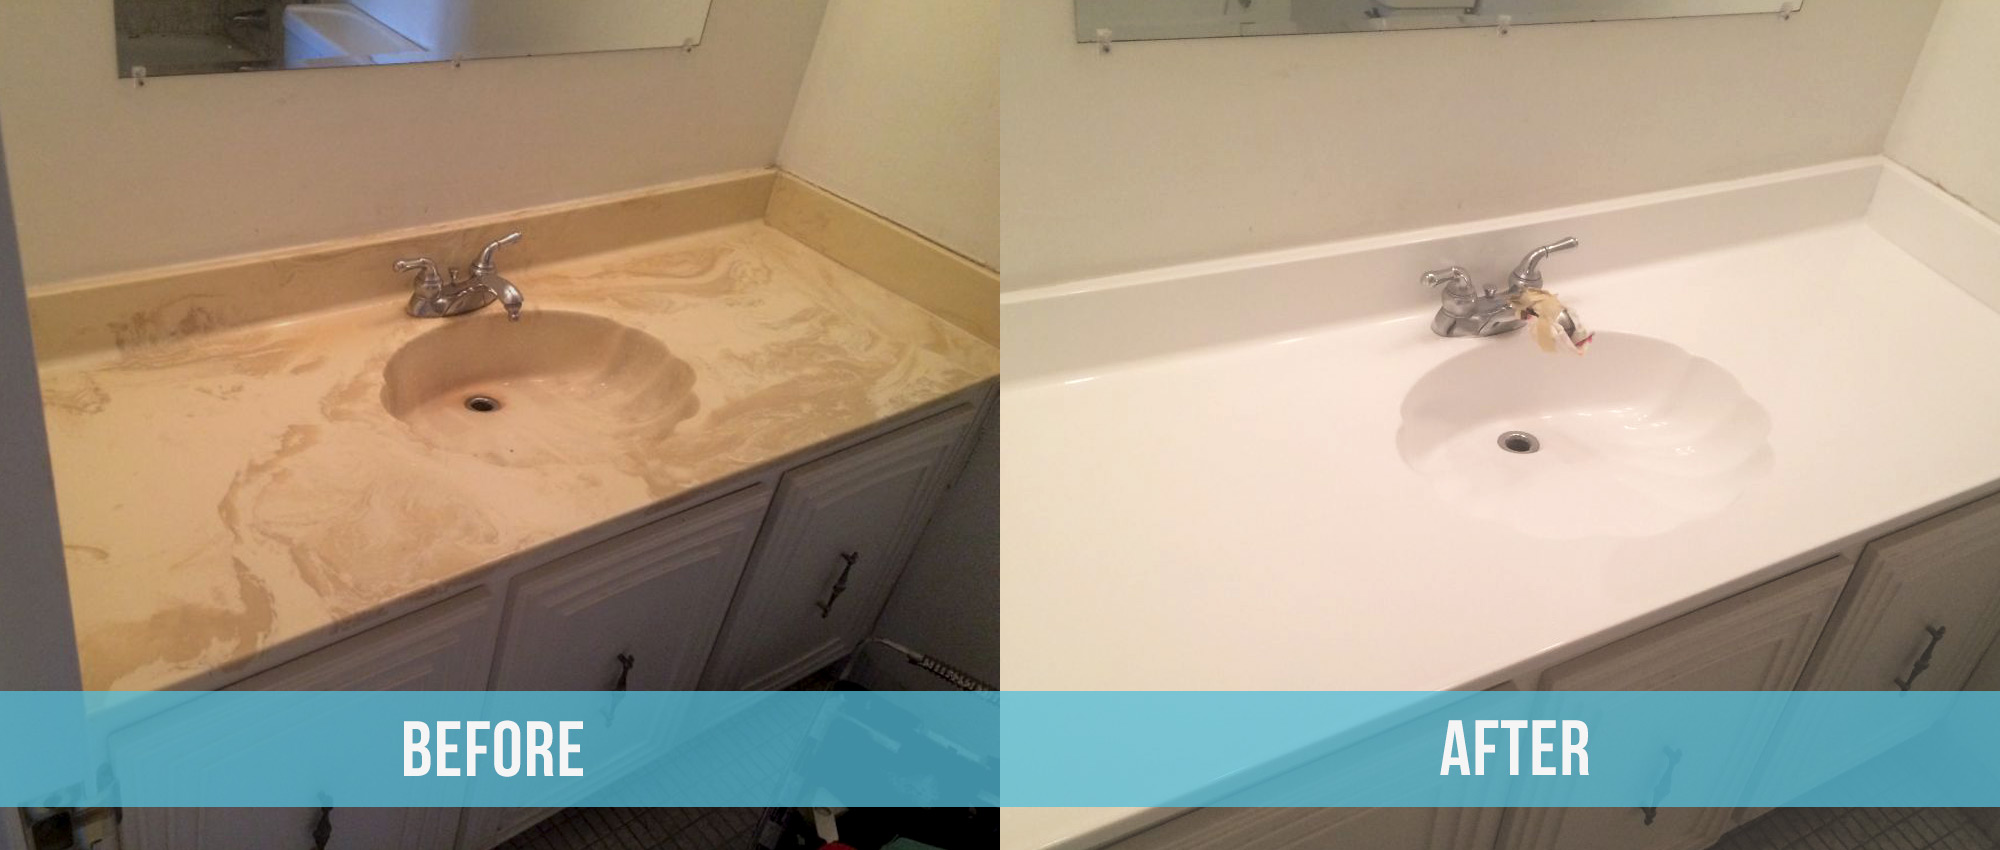 Tub Refinish Fort Lauderdale Florida Bathtub Refinishing